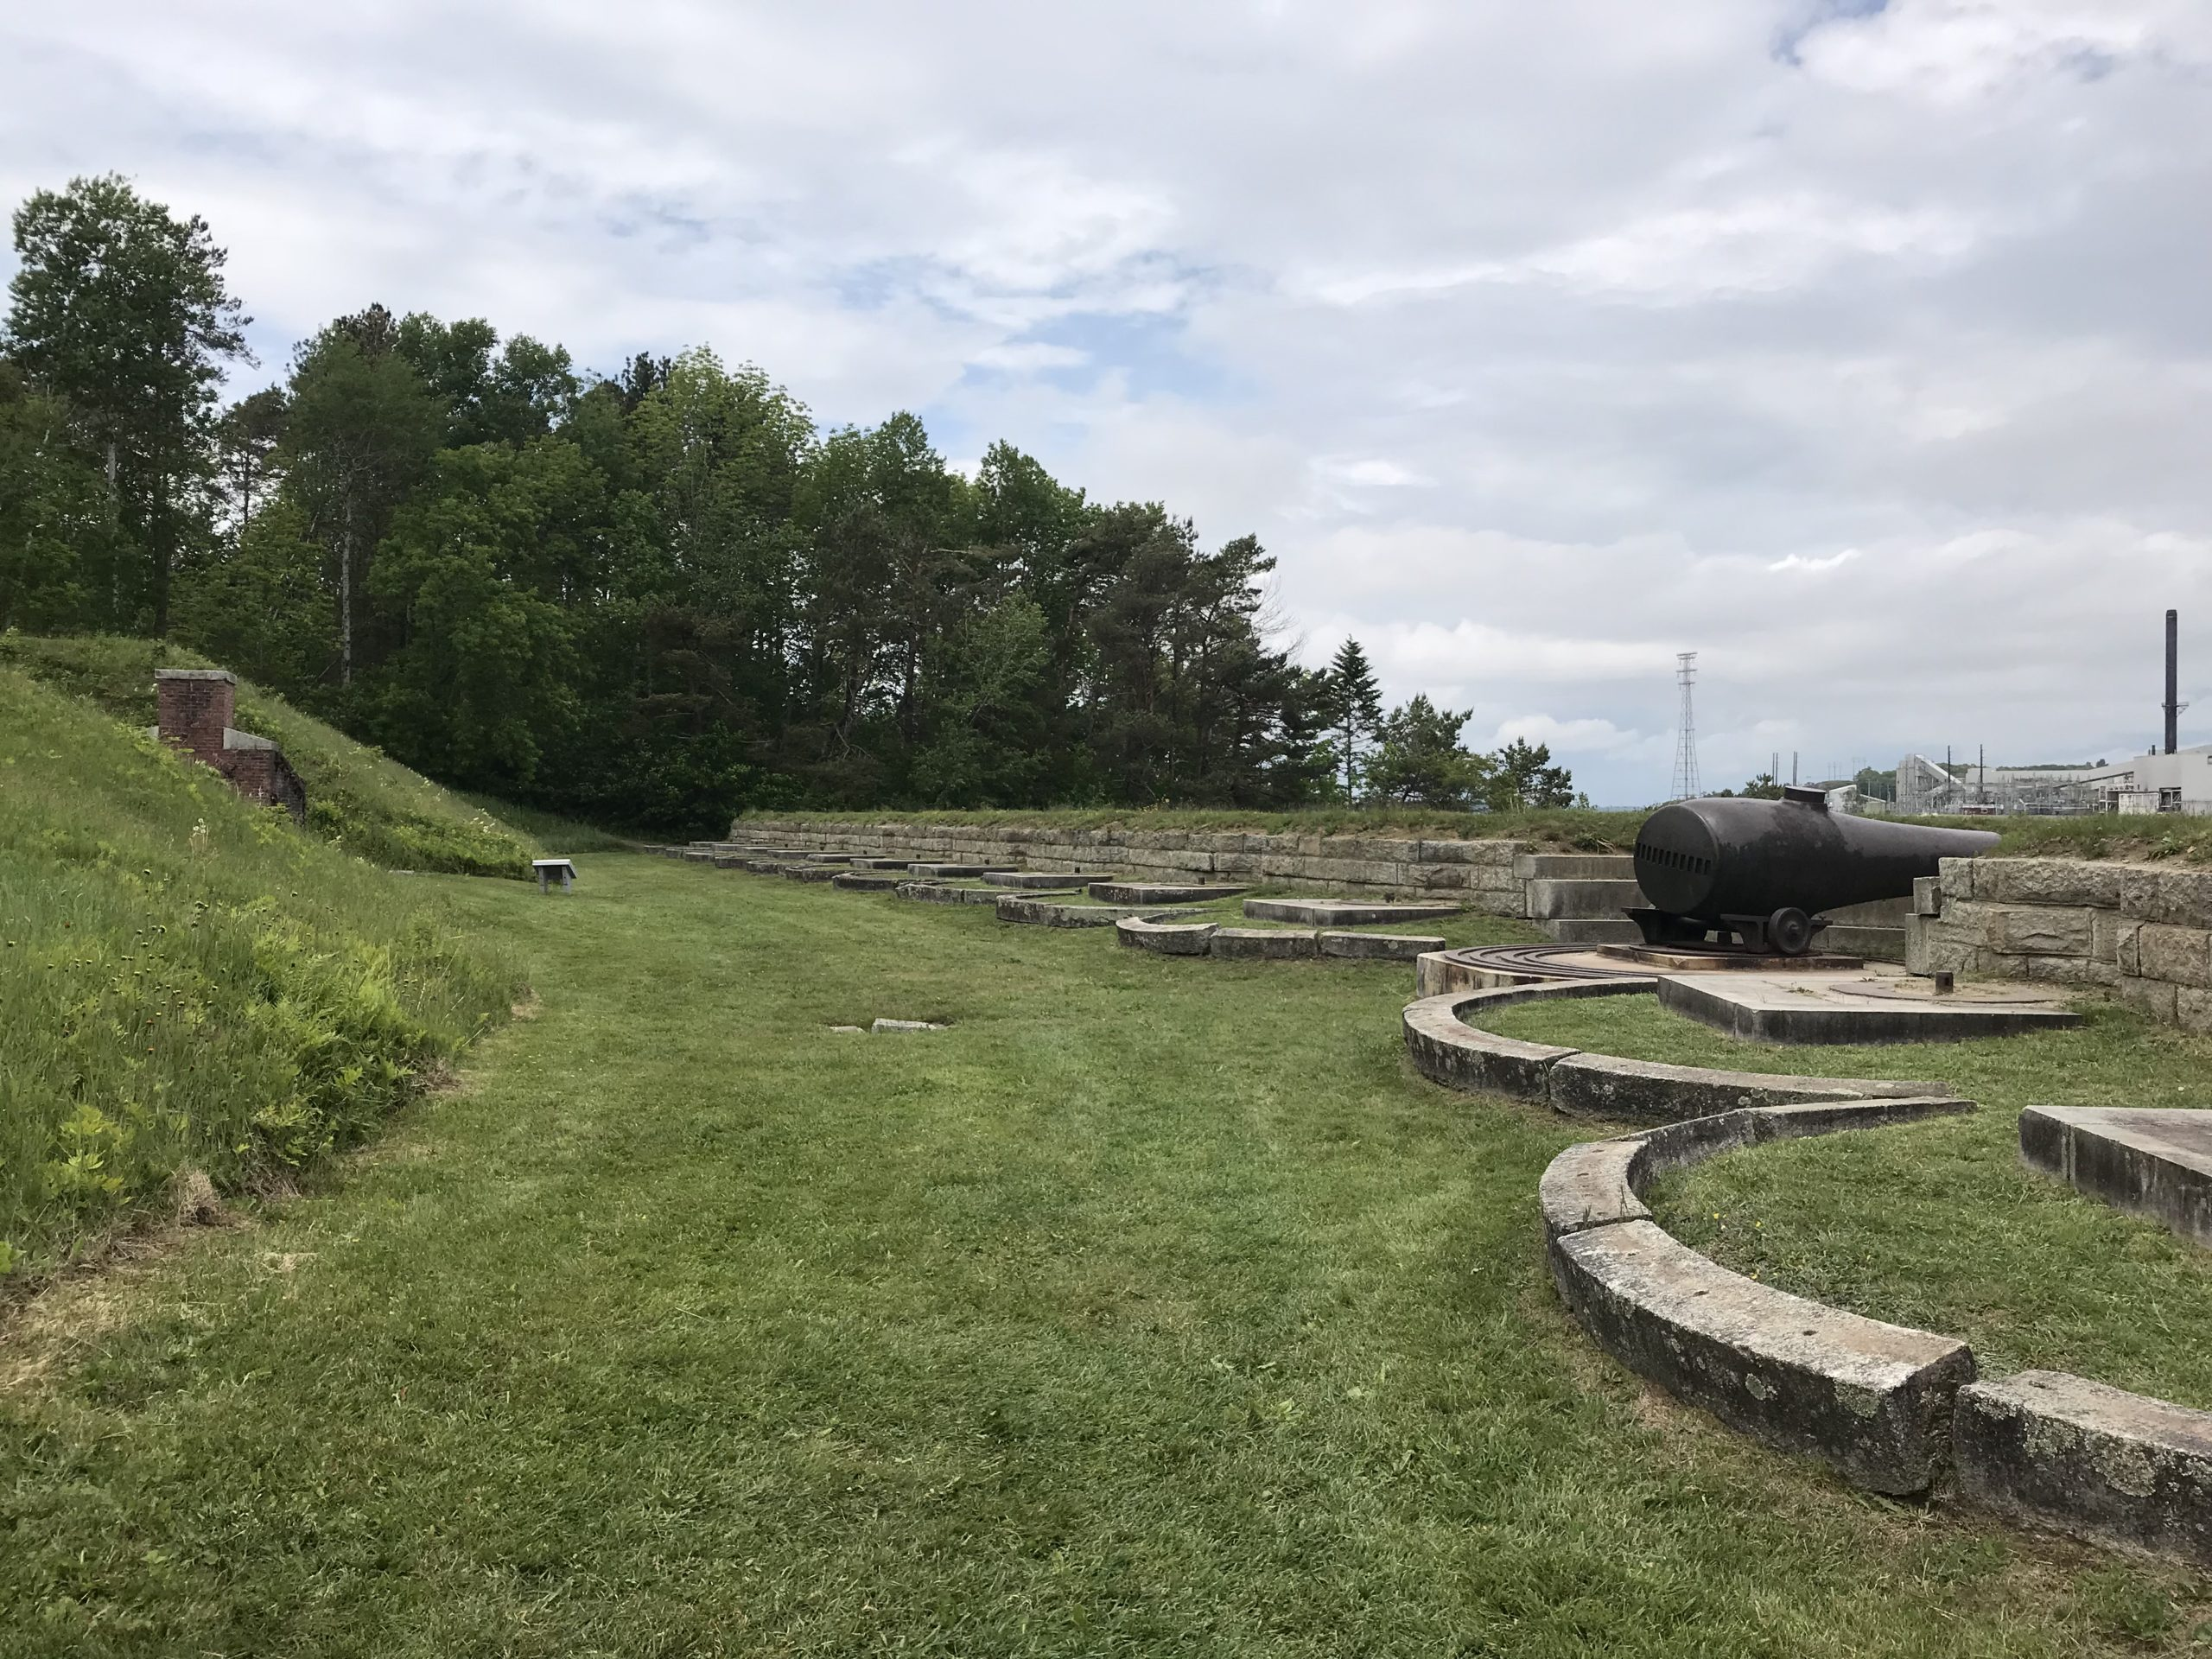 Lower outside area of Fort Knox near Cannons